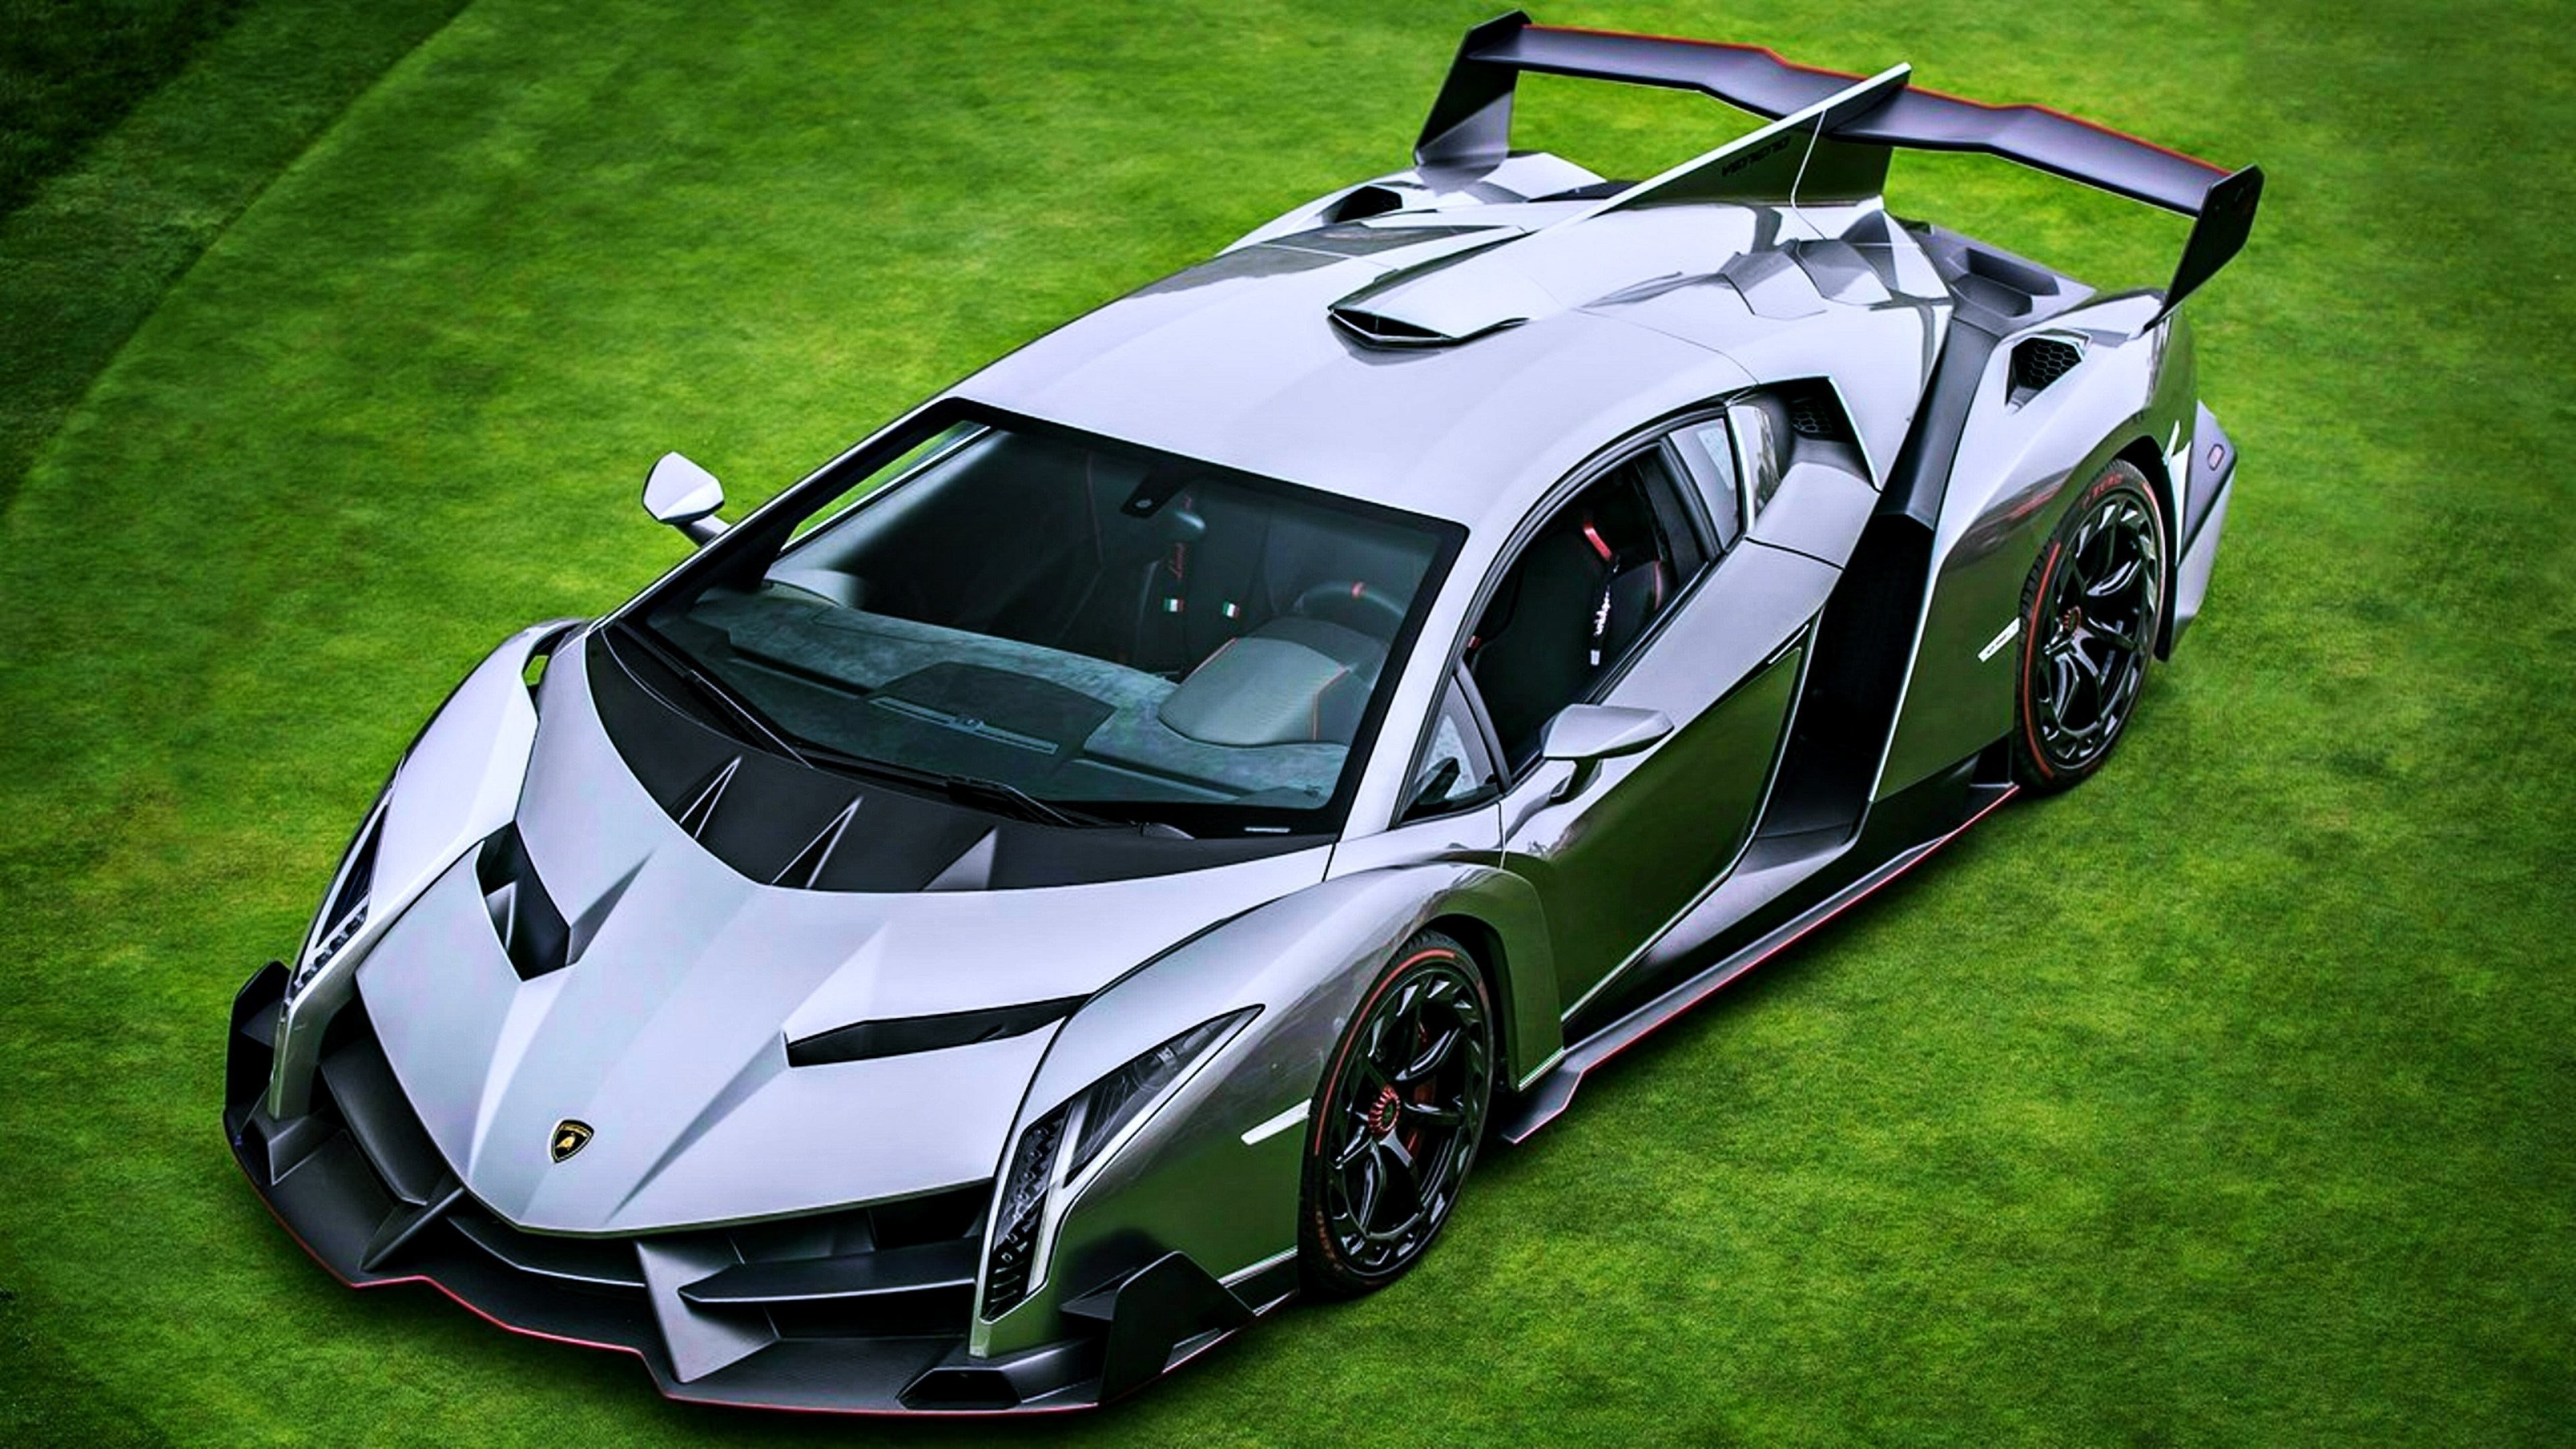 Latest Wallpaper Lamborghini Veneno Supercar Concept Car Cars Free Download